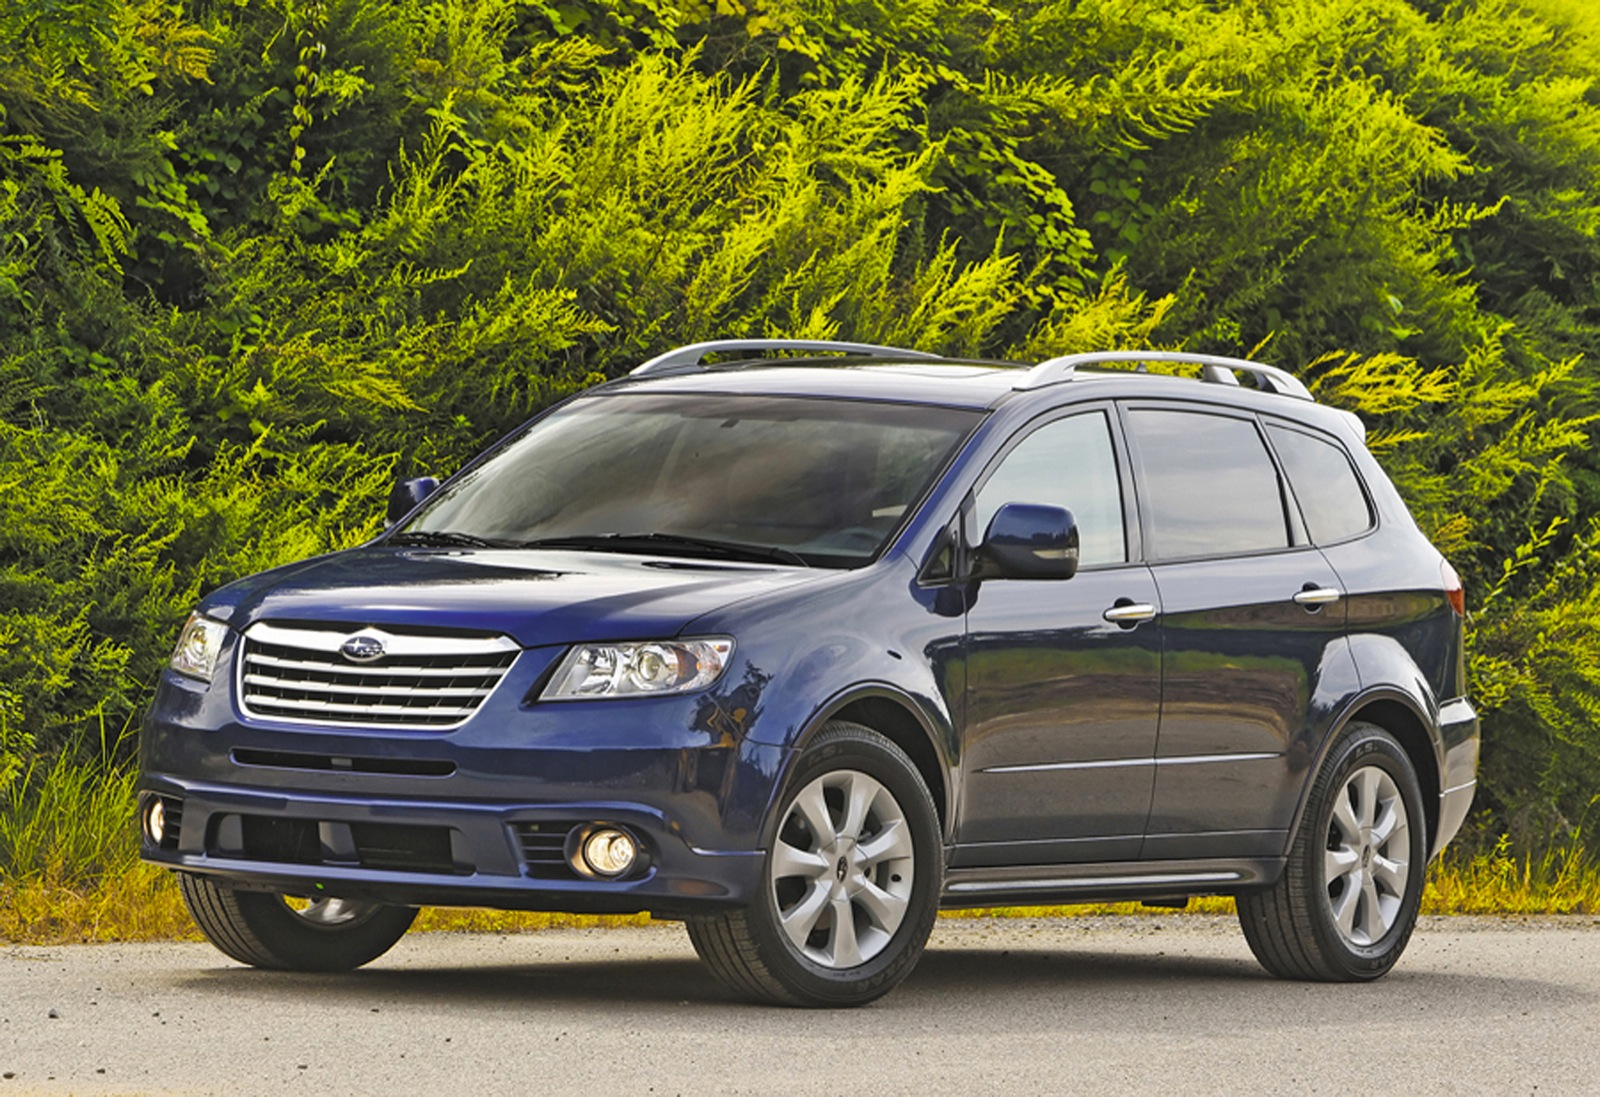 2013 subaru tribeca gas mileage the car connection vanachro Images